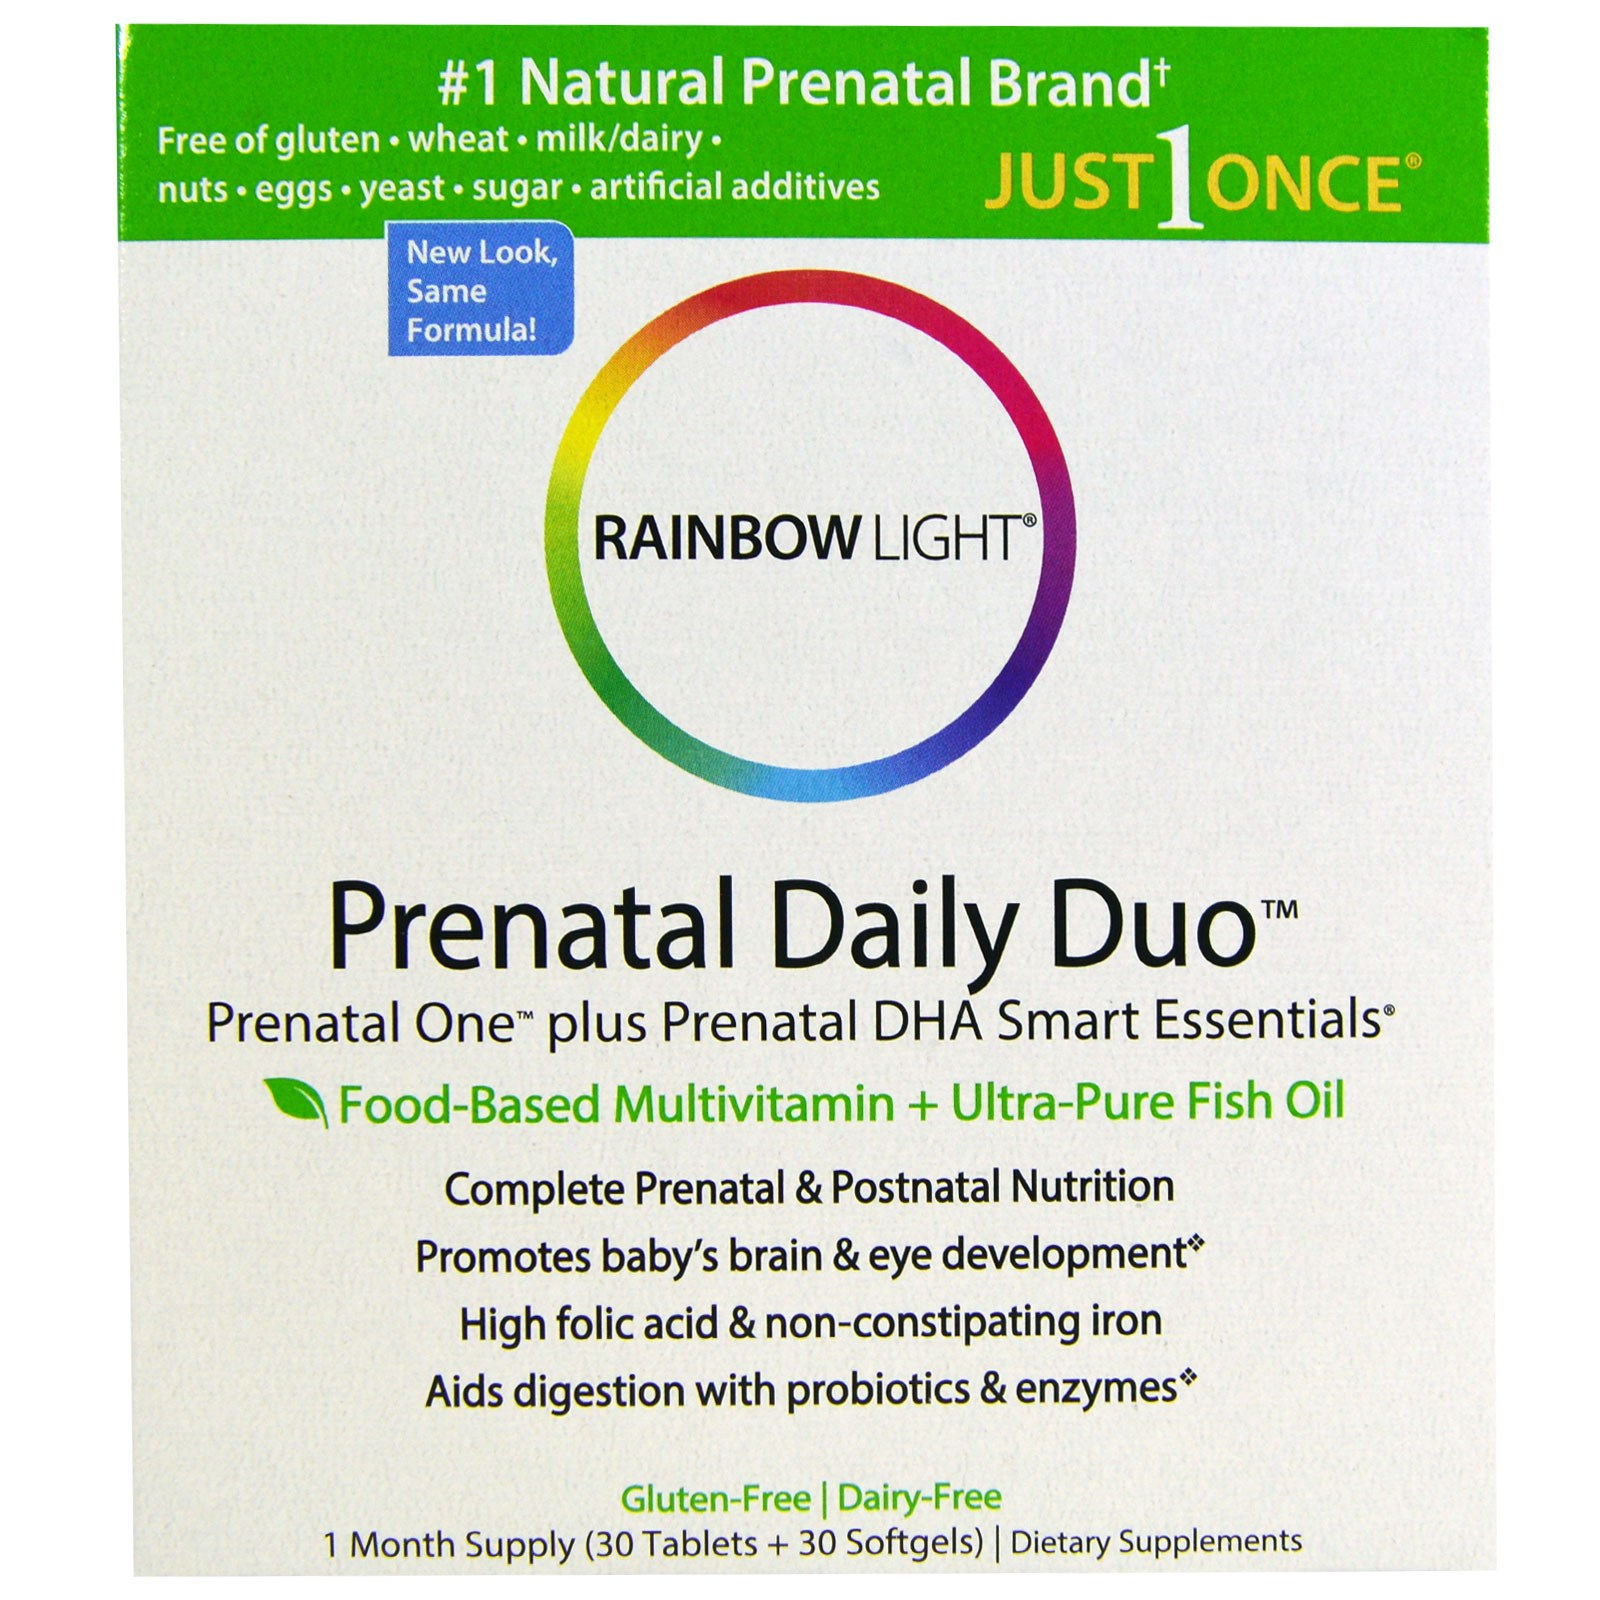 Rainbow Light, Prenatal Daily Duo, Prenatal One plus Prenatal DHA Smart Essentials, 1 Month Supply (30 Tablets + 30 Softgels)(pack of 4)